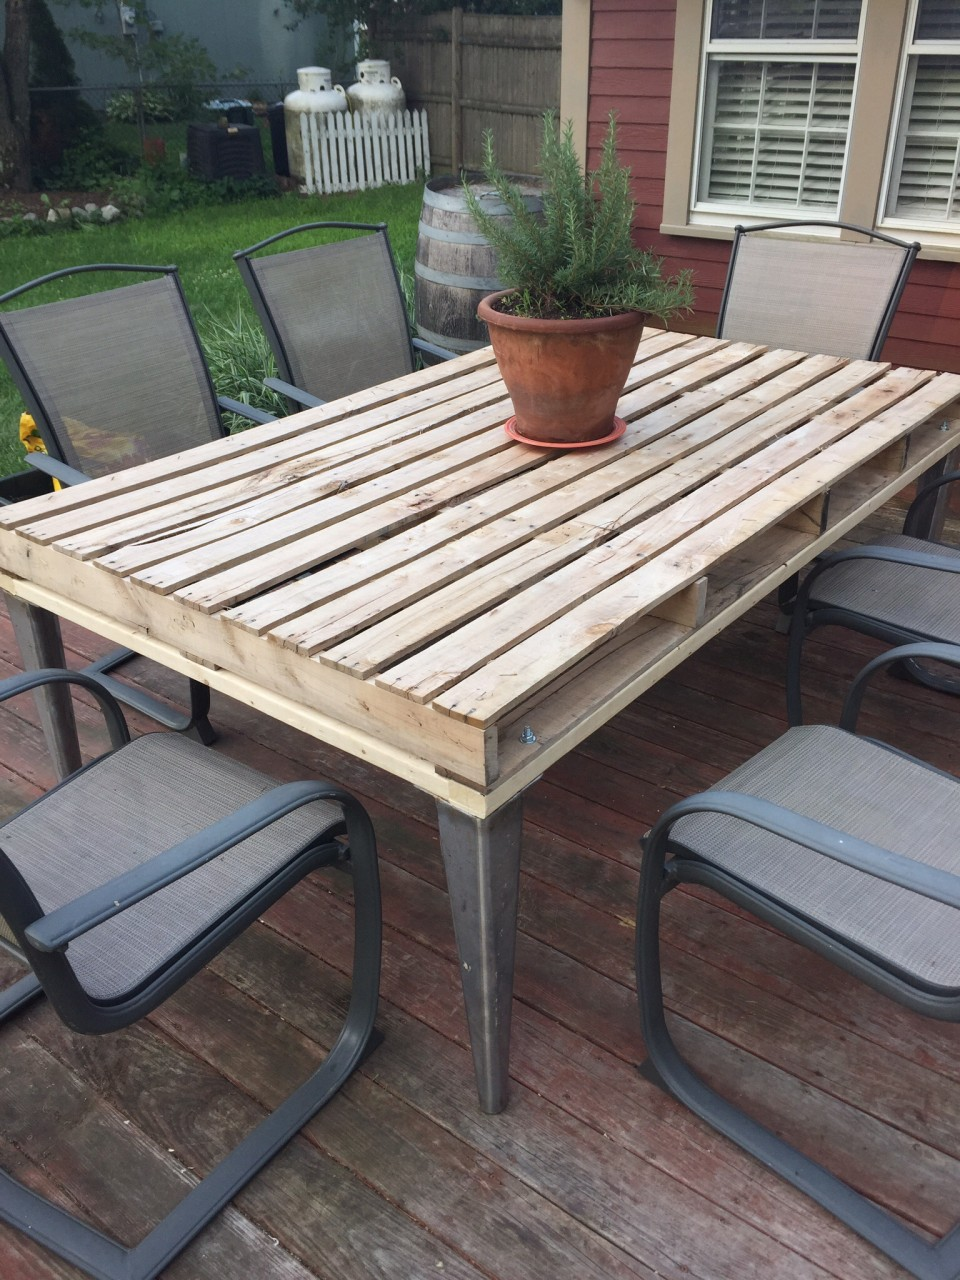 Patio coffee table out of wooden pallets pallet ideas for Patio furniture table